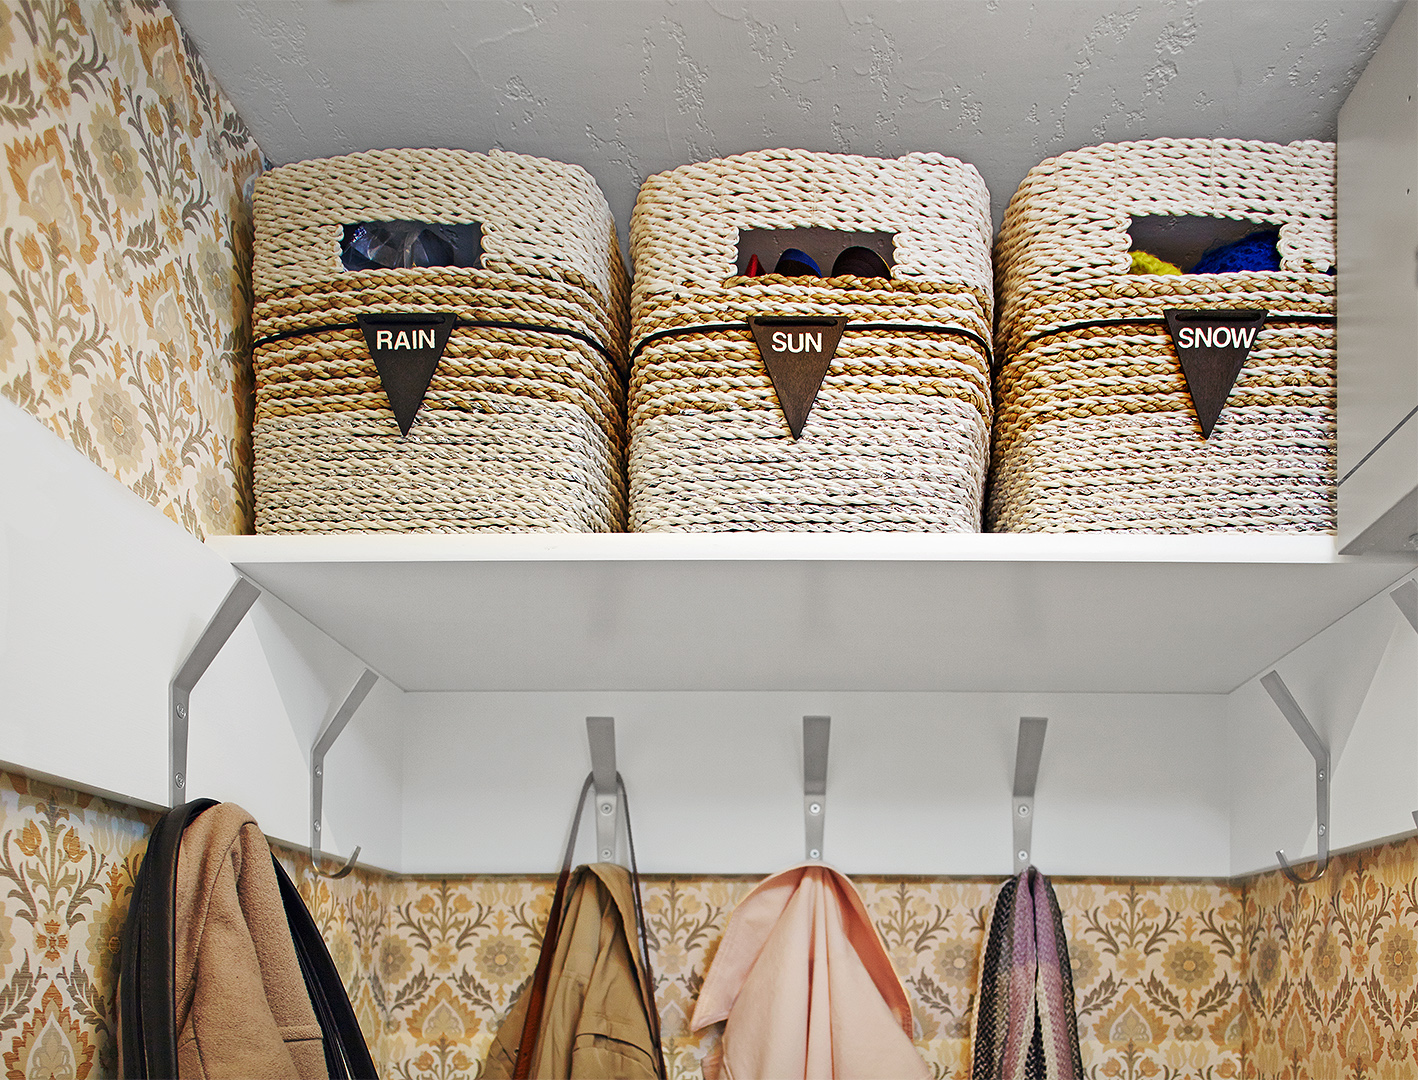 woven labeled baskets on high closet shelf for seasonal items